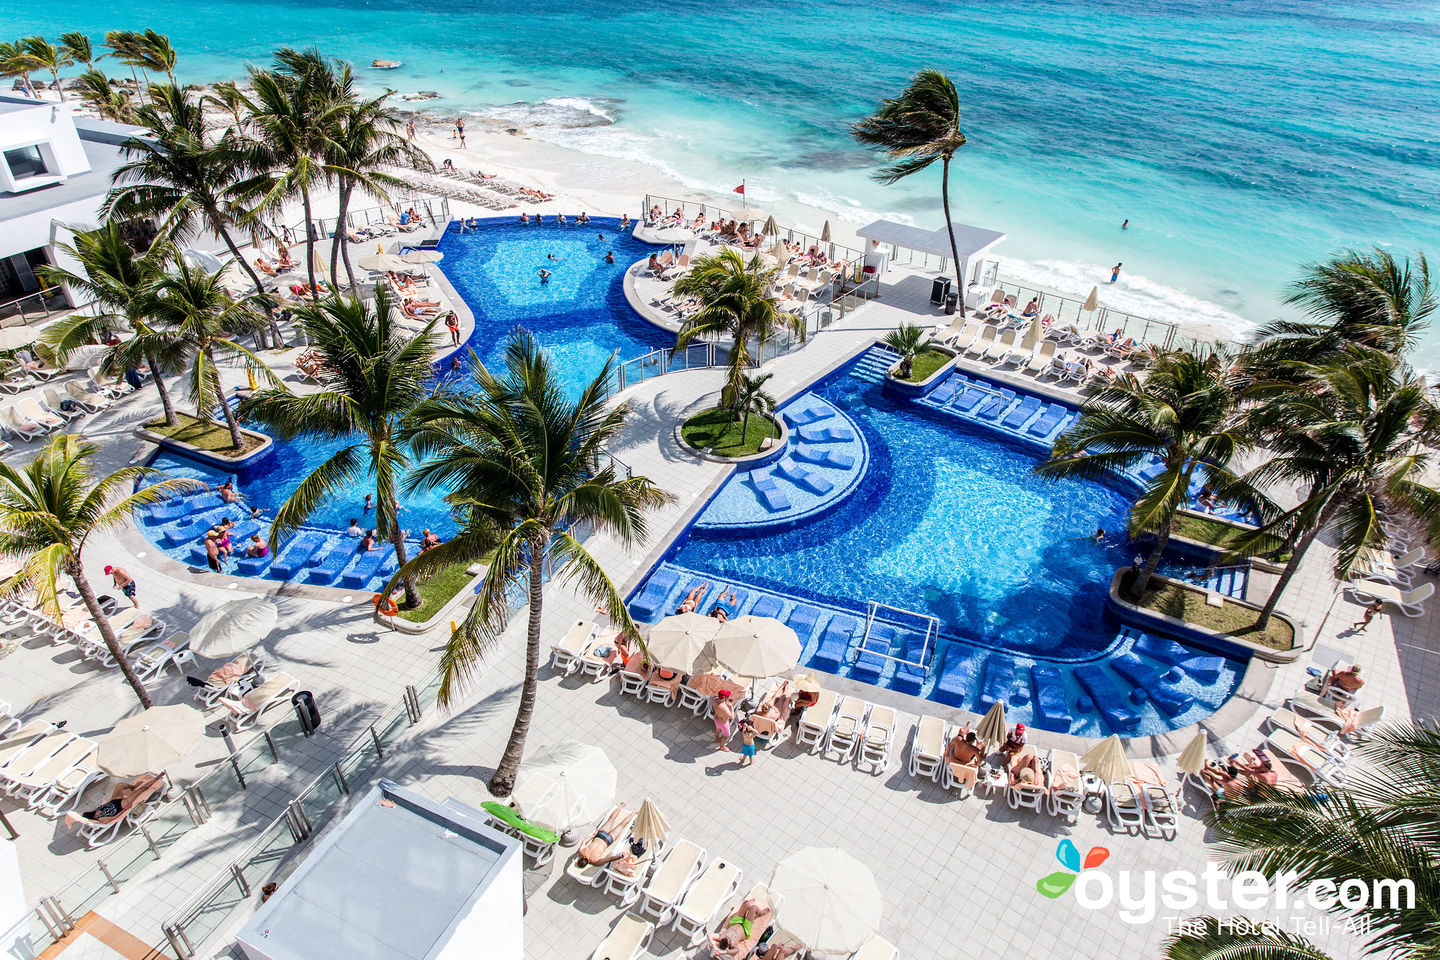 The 9 Best Spring Break Party Destinations for Fun, Sun, and Nightlife